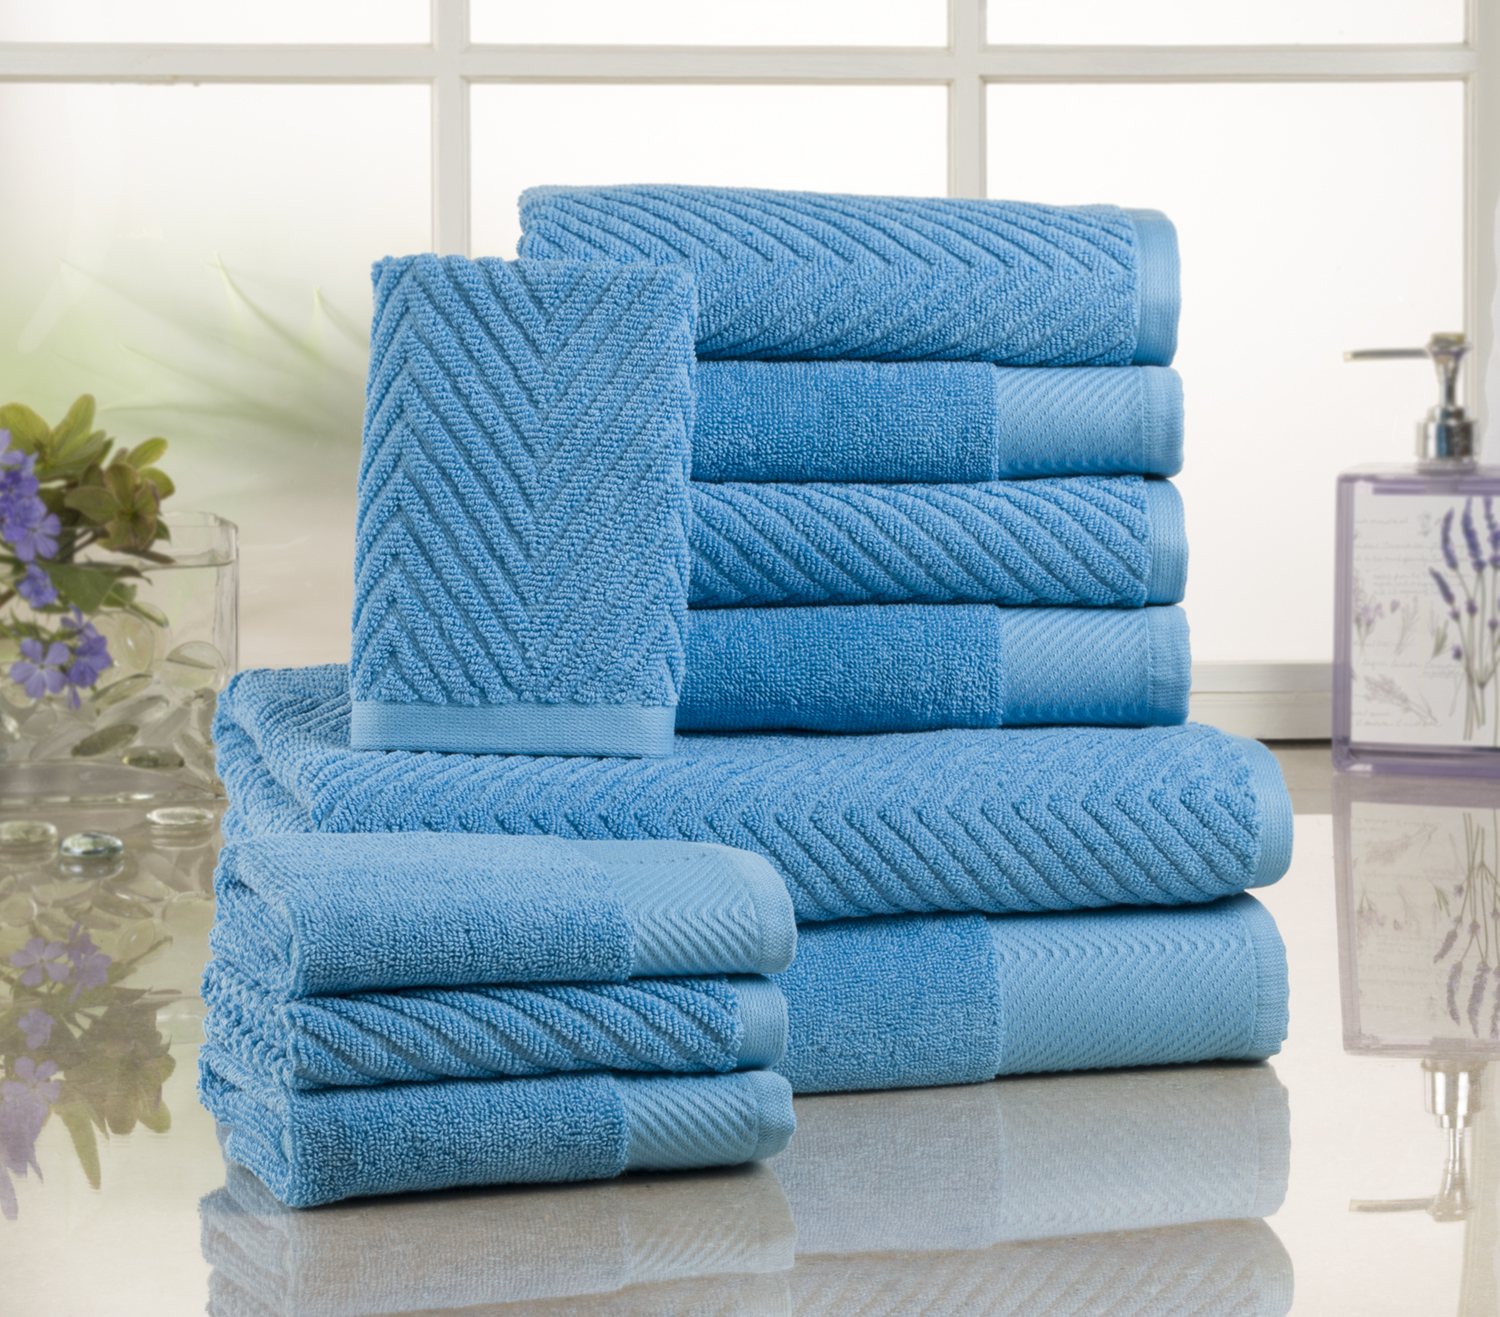 OSP_e-commerce_Towels.jpg